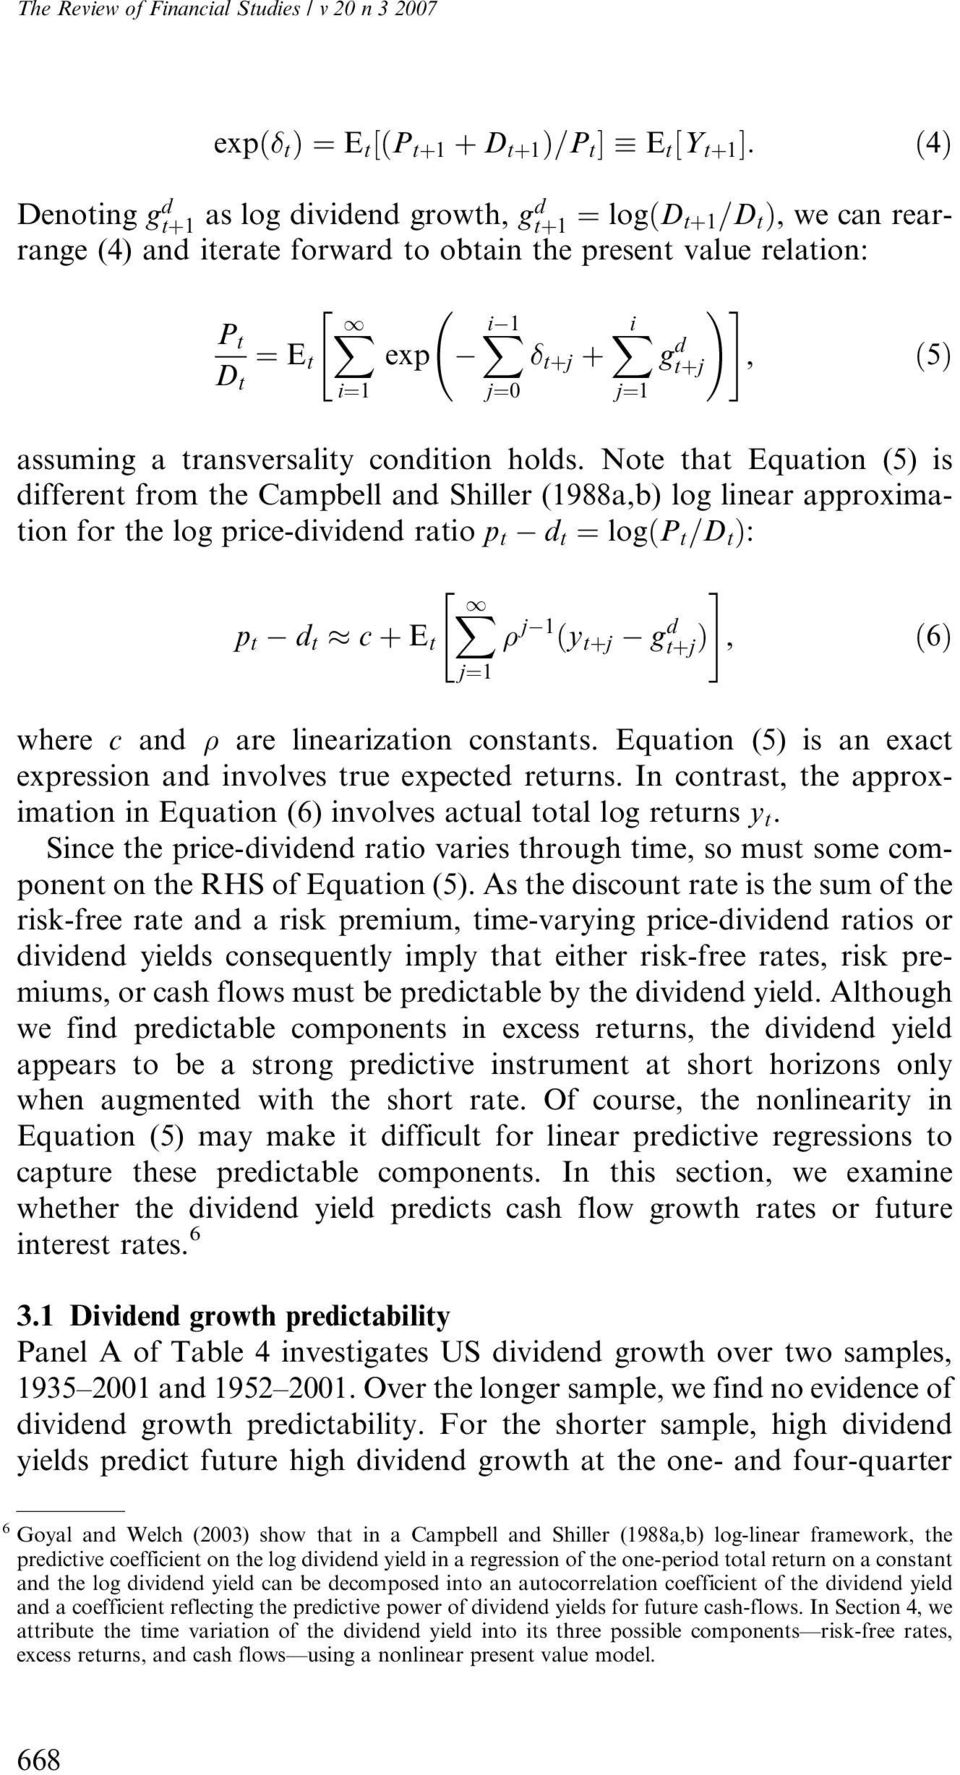 "Note that Equation (5) is different from the Campbell and Shiller (1988a,b) log linear approximation for the log price-dividend ratio p t d t ¼ logðp t =D t Þ: j¼0 "" # X 1 p t d t c þ E t j 1 ðy tþj"